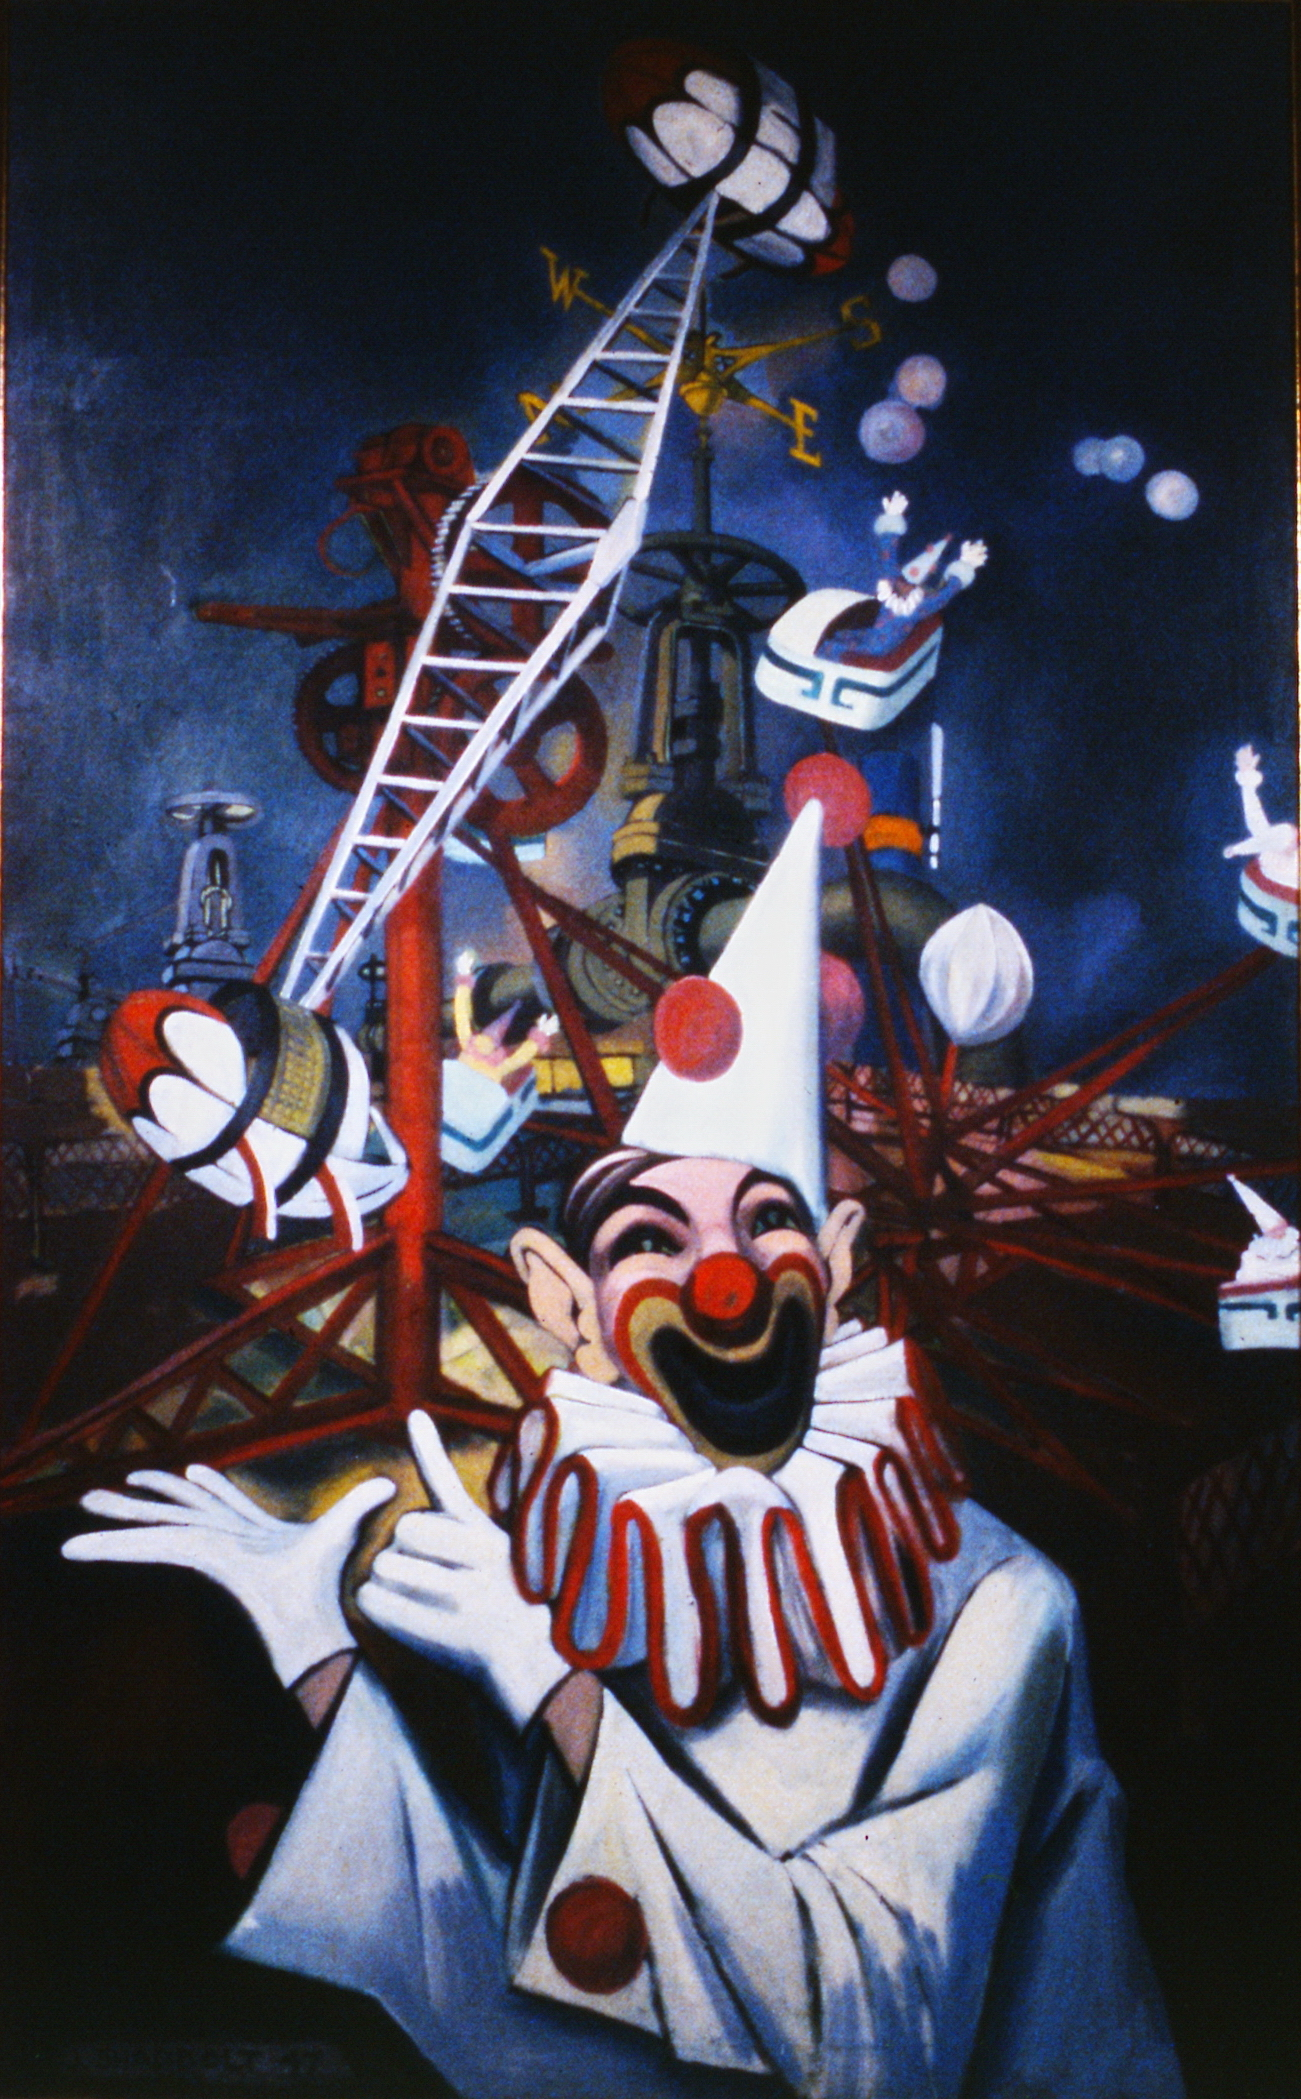 Carnival Time , 1947, Jack Shadbolt, oil painting on canvas, 162.5 cm x 100.5 cm, 1947.01.01, gift of Henry Meyerhoff